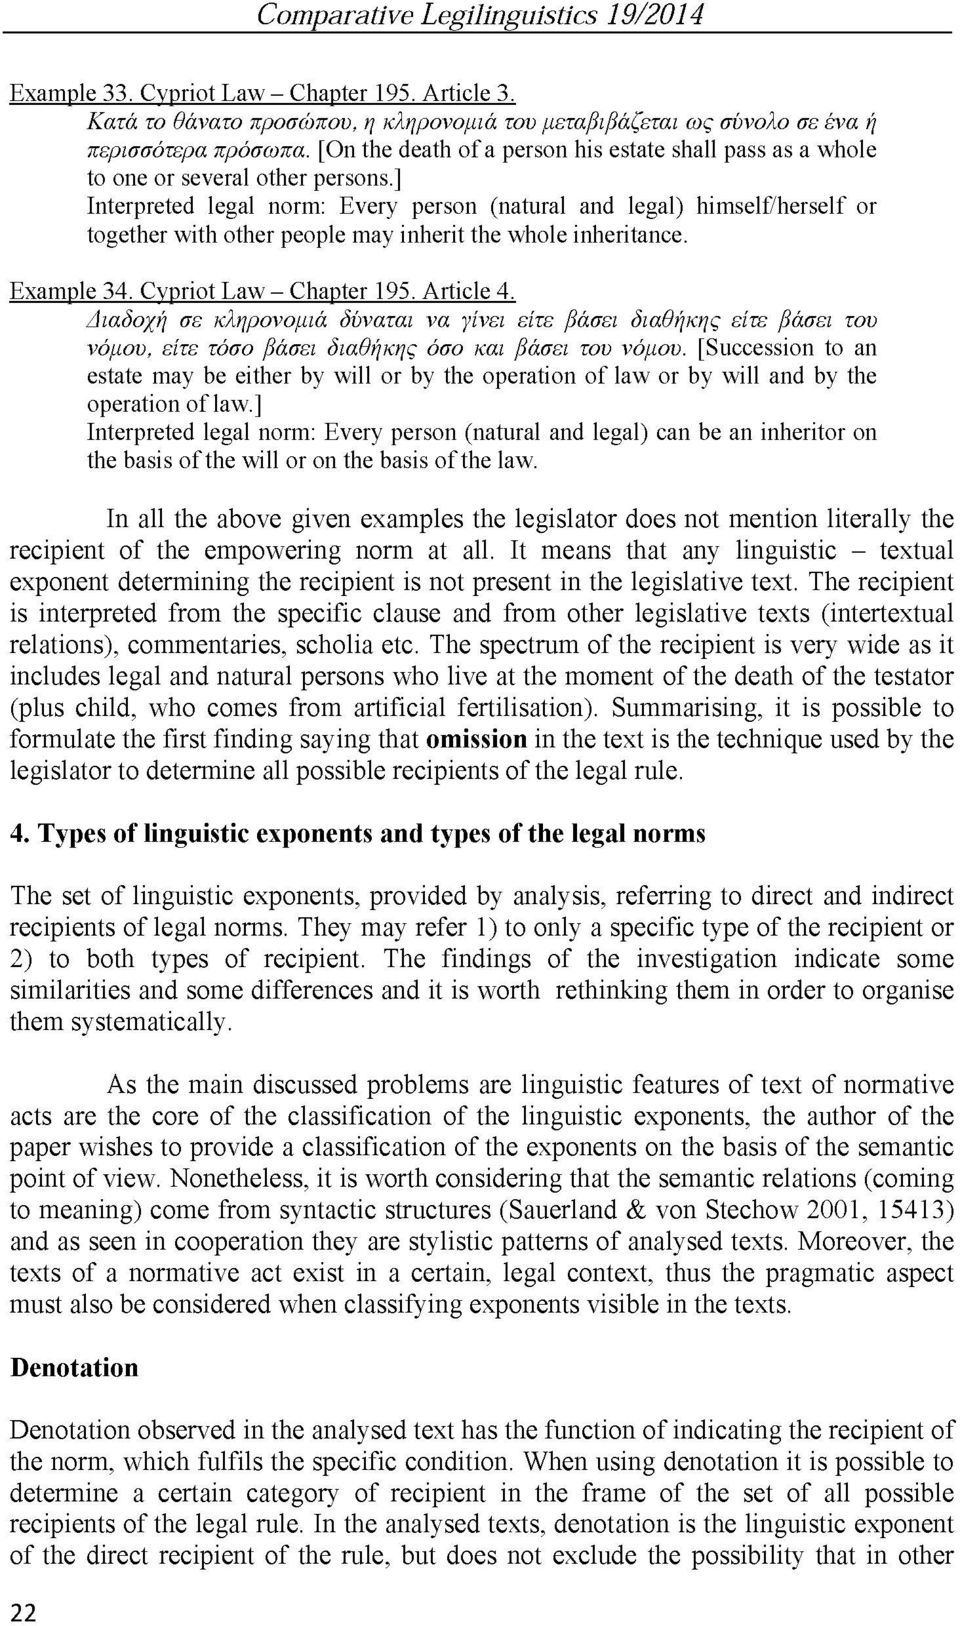 ] Interpreted legal norm: Every person (natural and legal) himself/herself or together with other people may inherit the whole inheritance. Example 34. Cypriot Law - Chapter 195. Article 4.